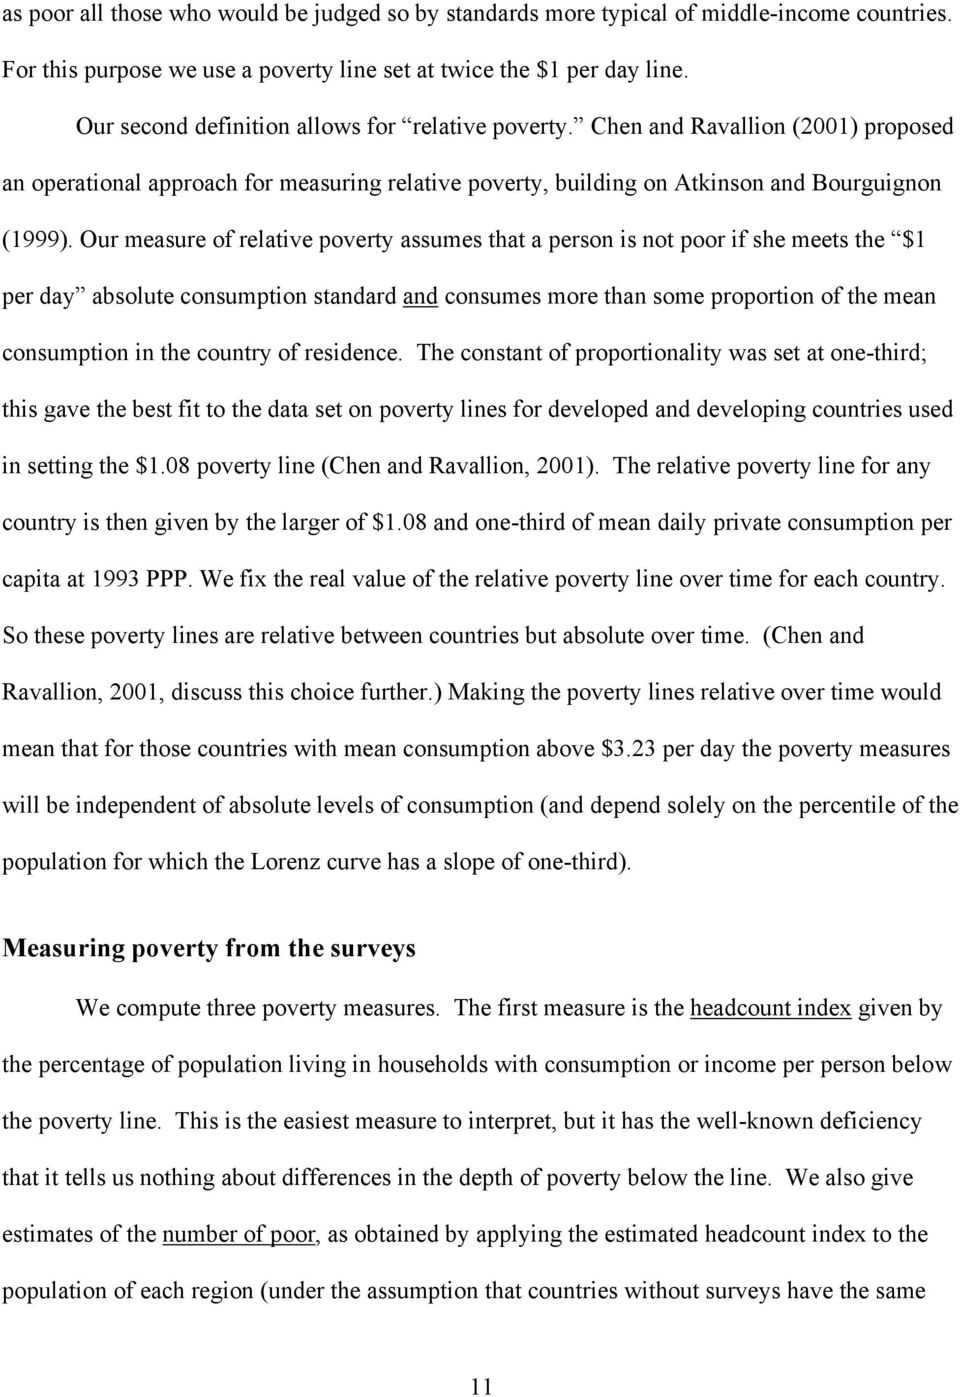 Our measure of relative poverty assumes that a person is not poor if she meets the $1 per day absolute consumption standard and consumes more than some proportion of the mean consumption in the